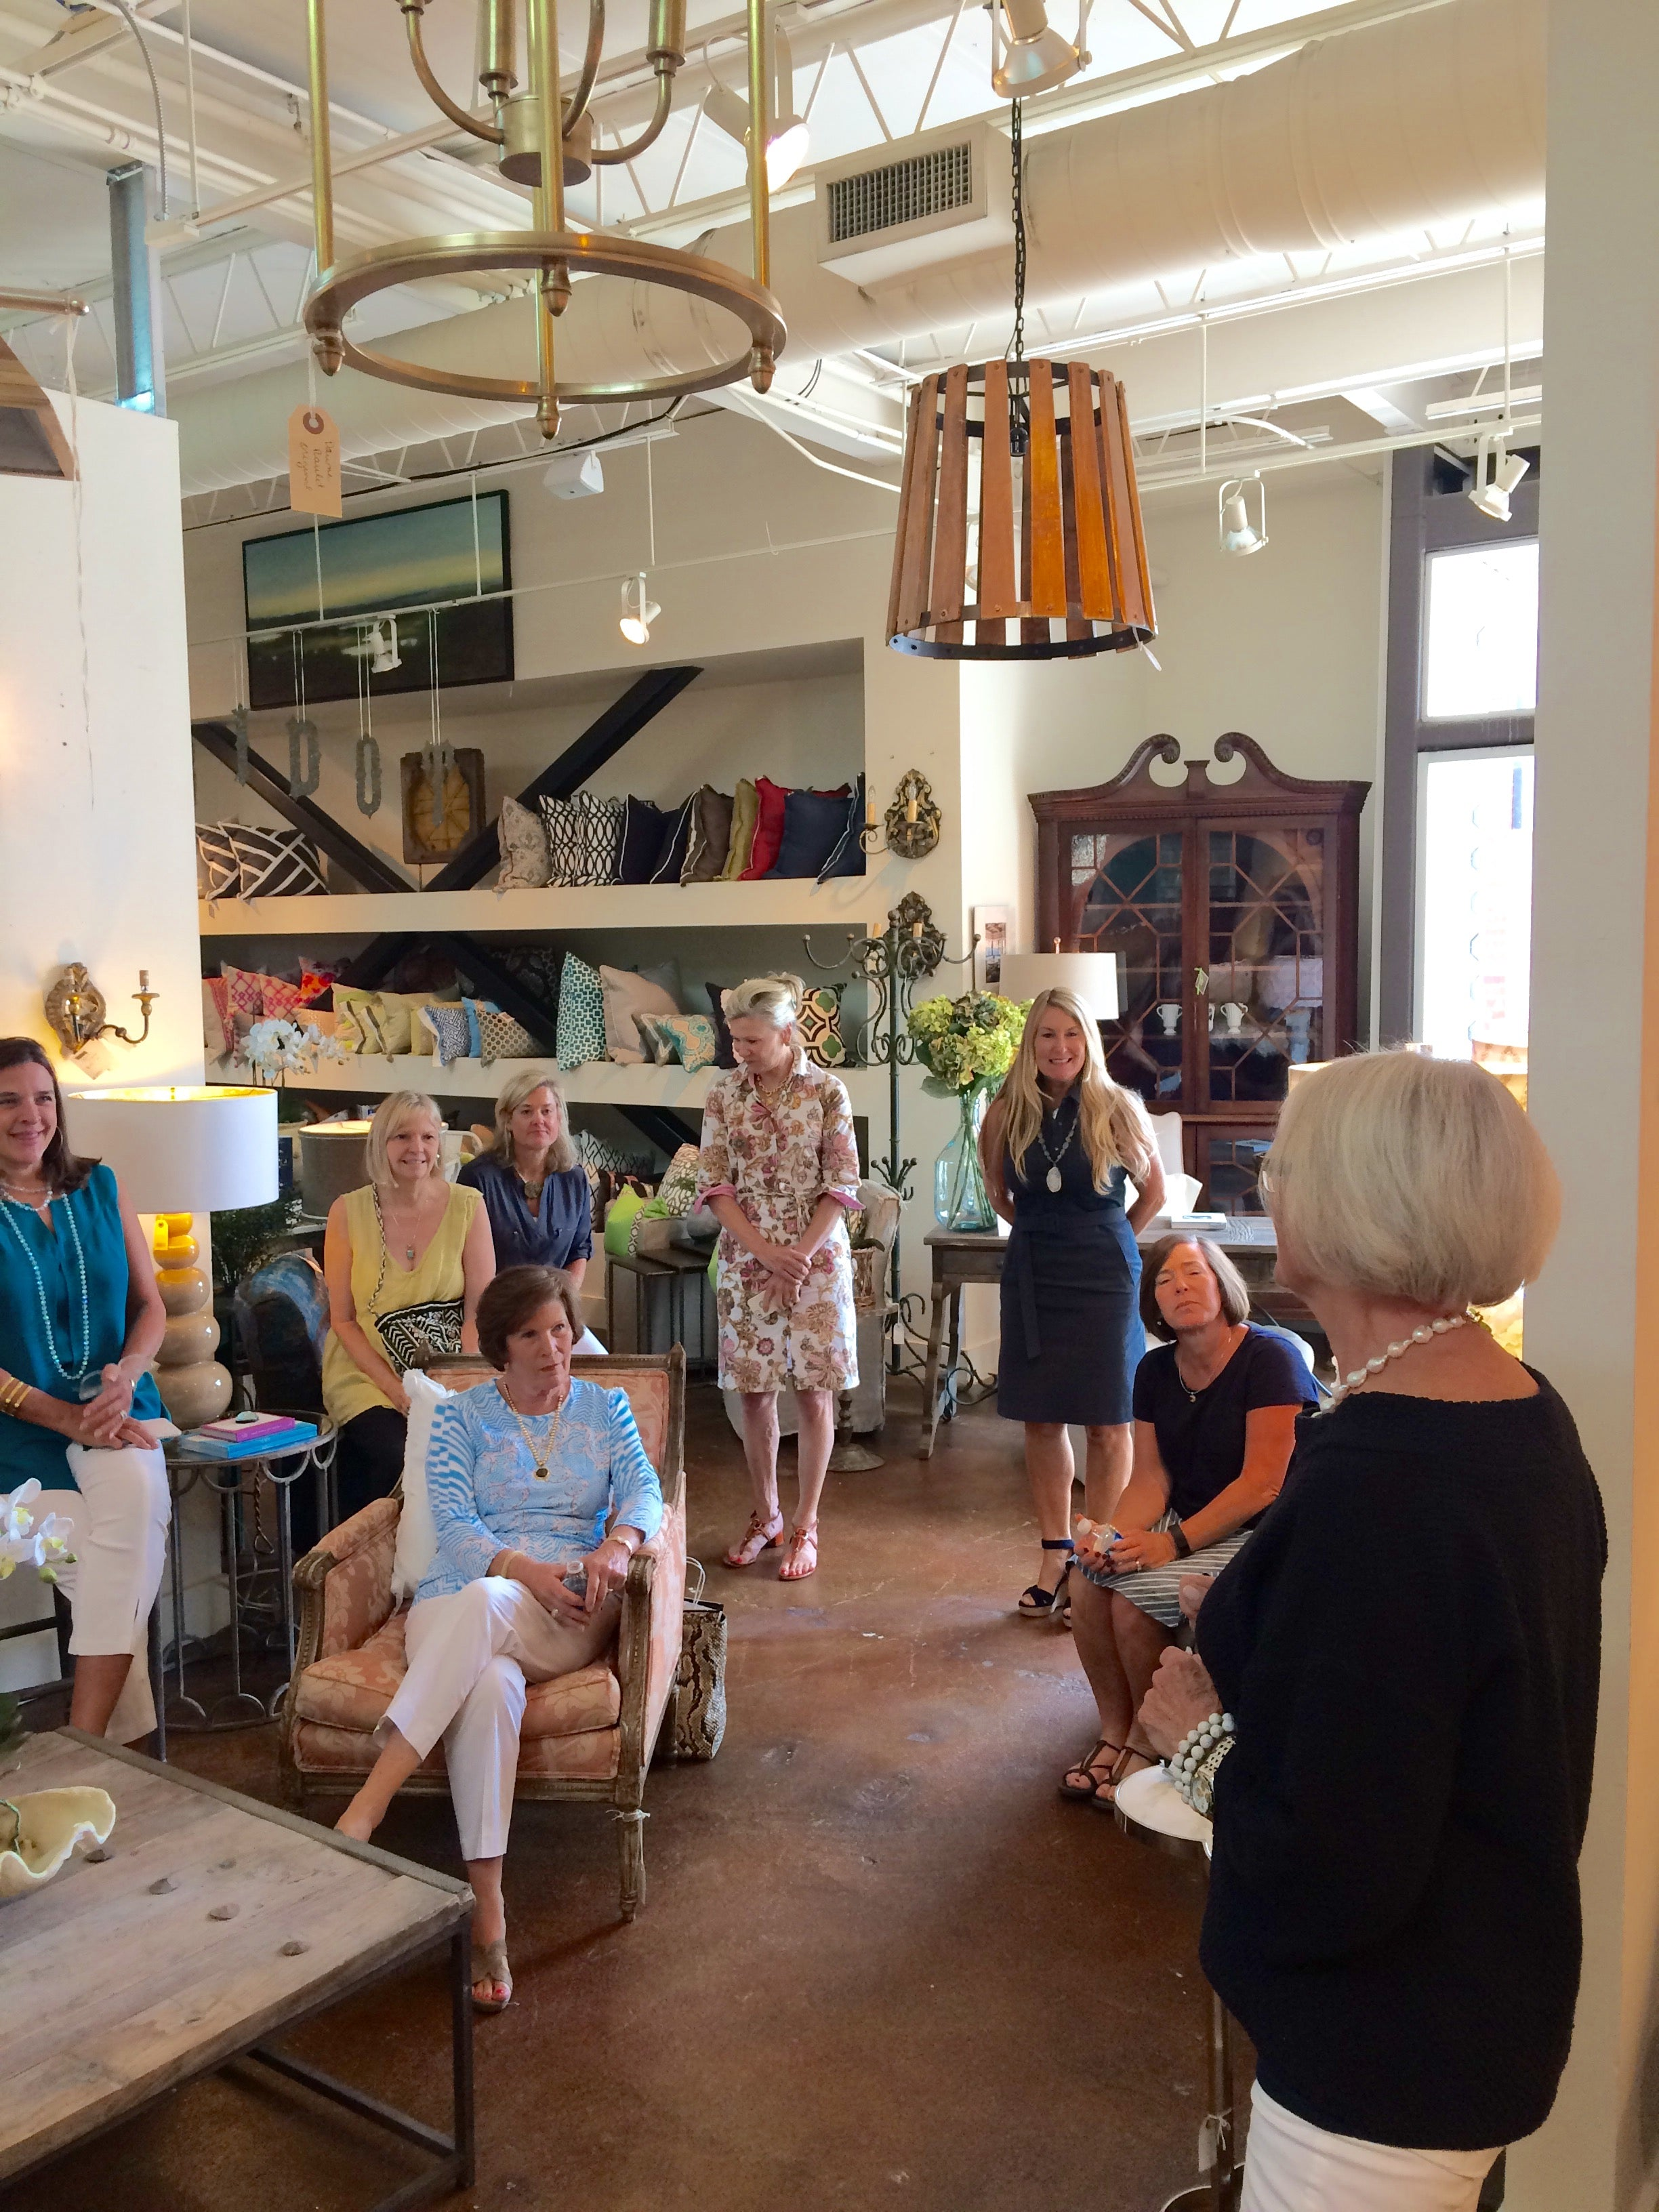 Peacock Alley founder Mary Ella Gabler speaking to guests at Peridot West in Atlanta